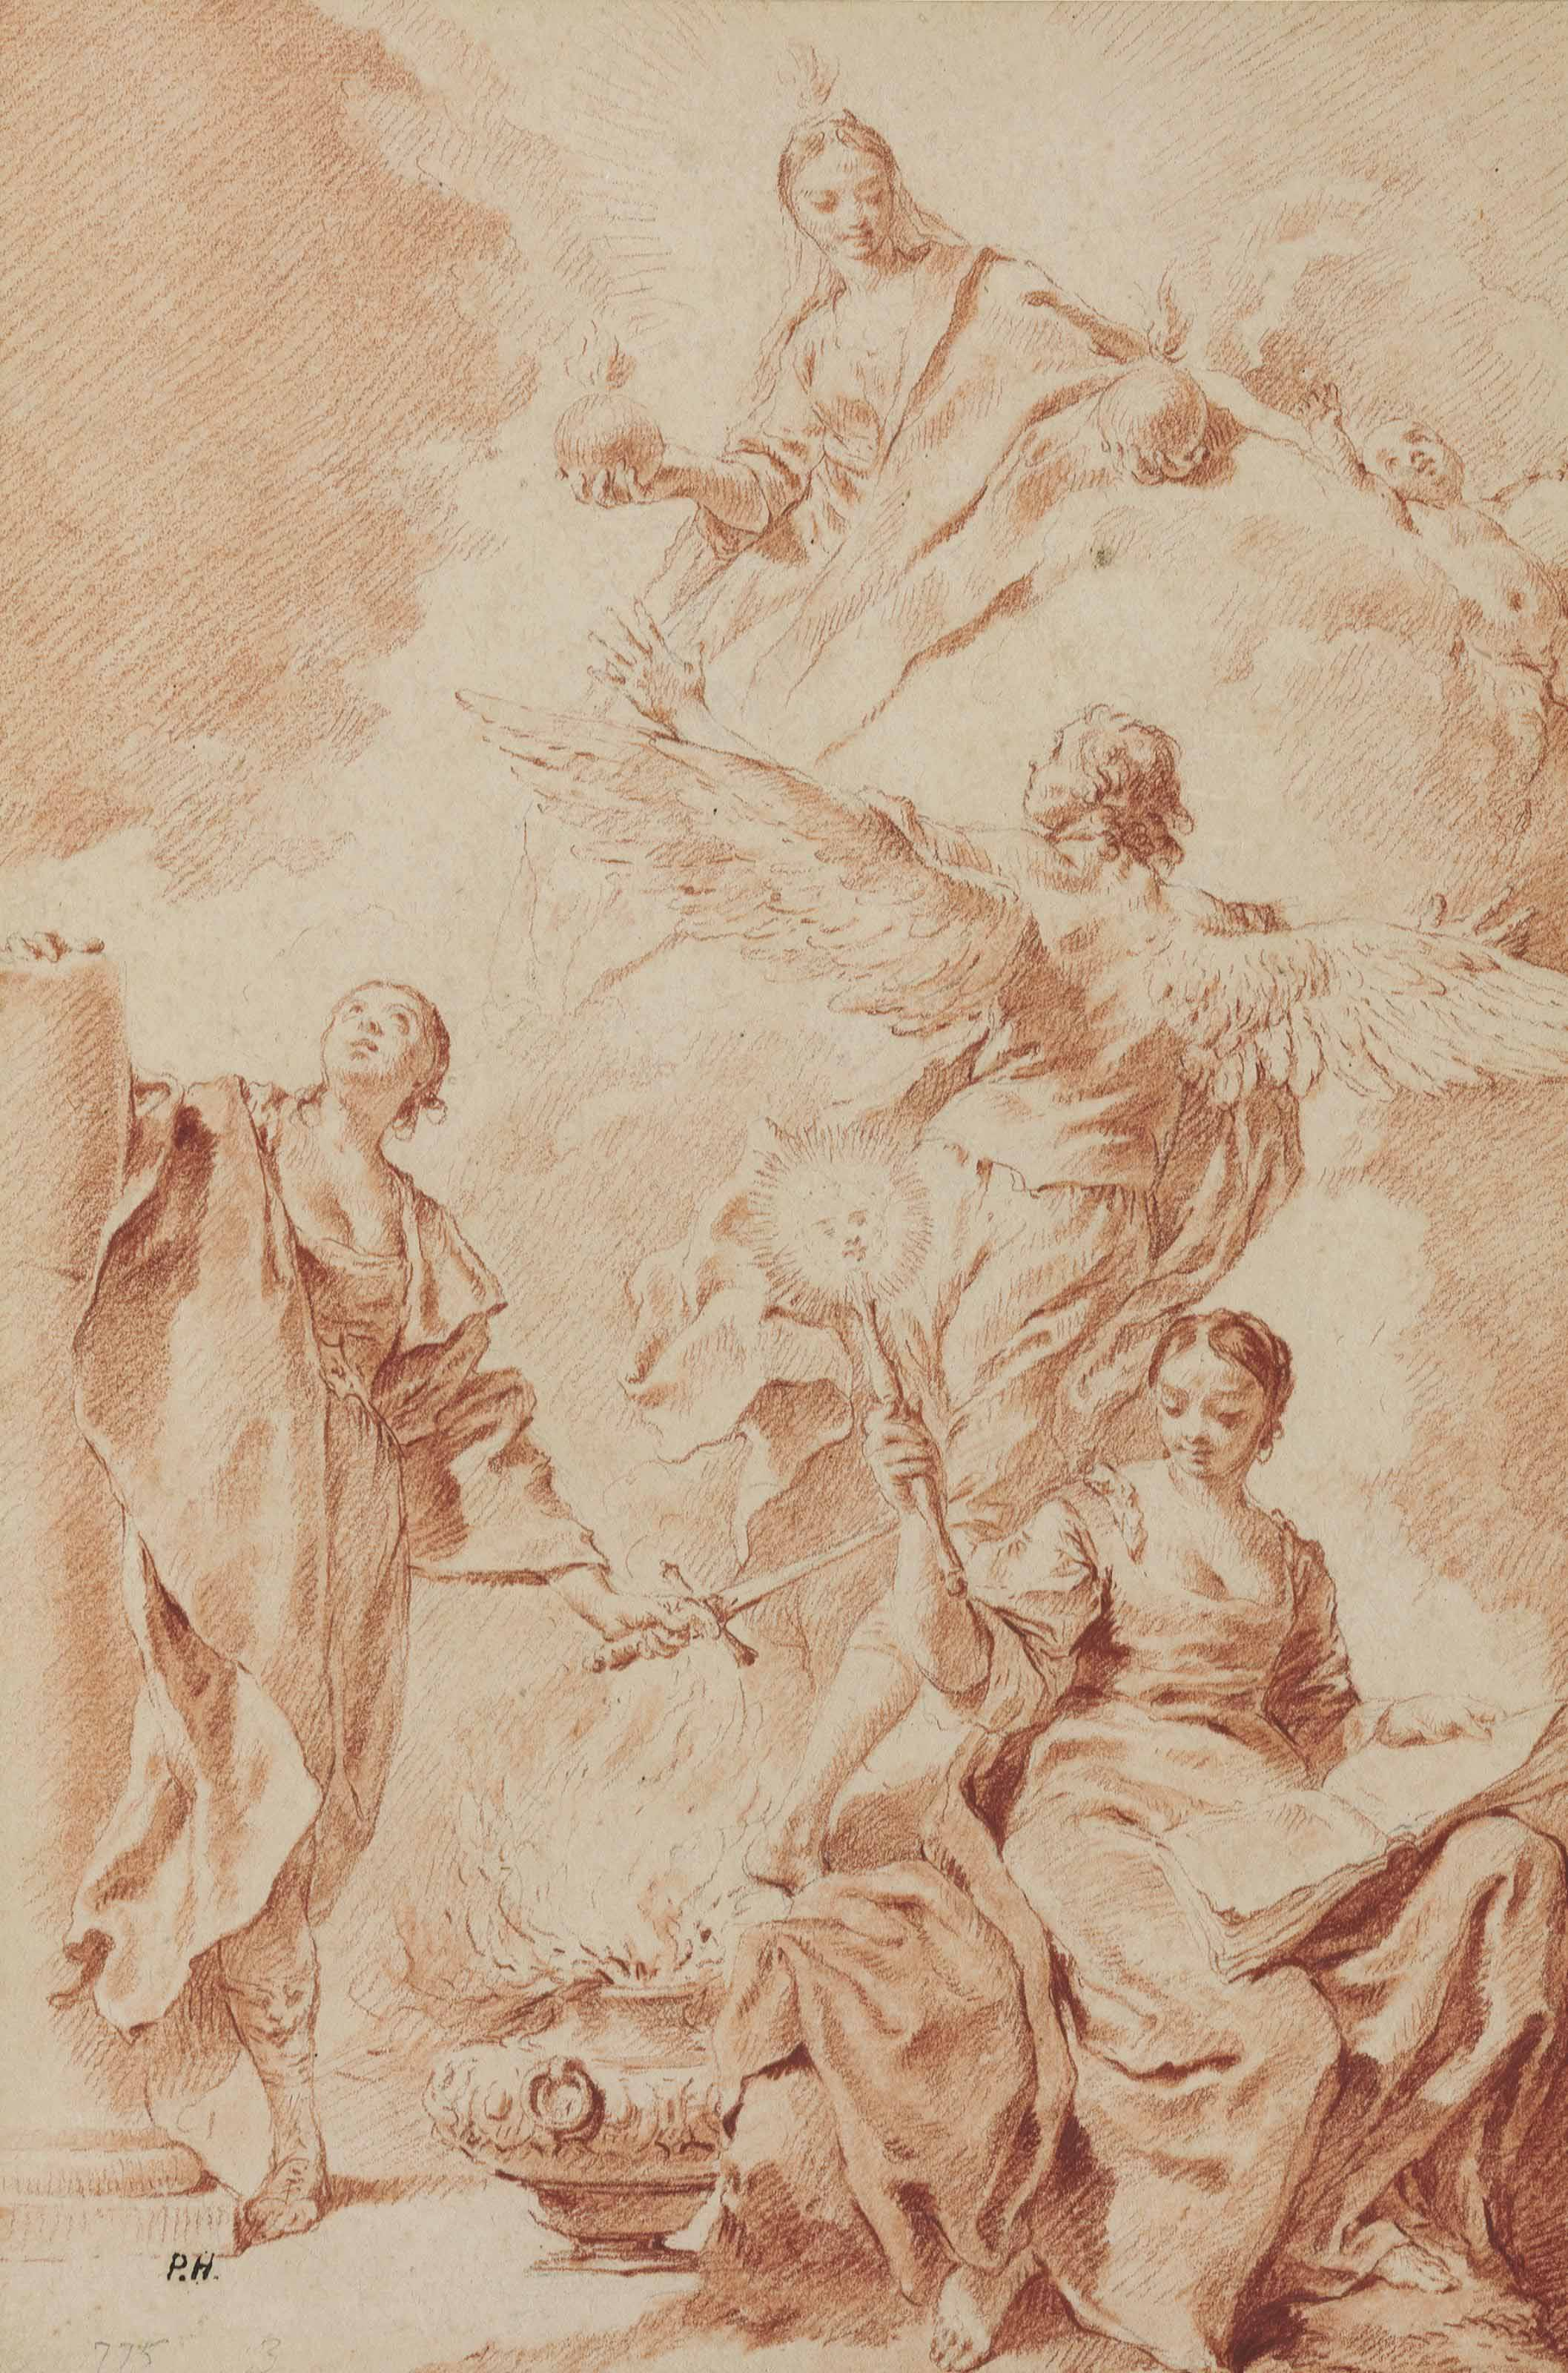 Design for a frontispiece: Allegorical figures of Constancy, Philosophy and Truth, with a winged genius